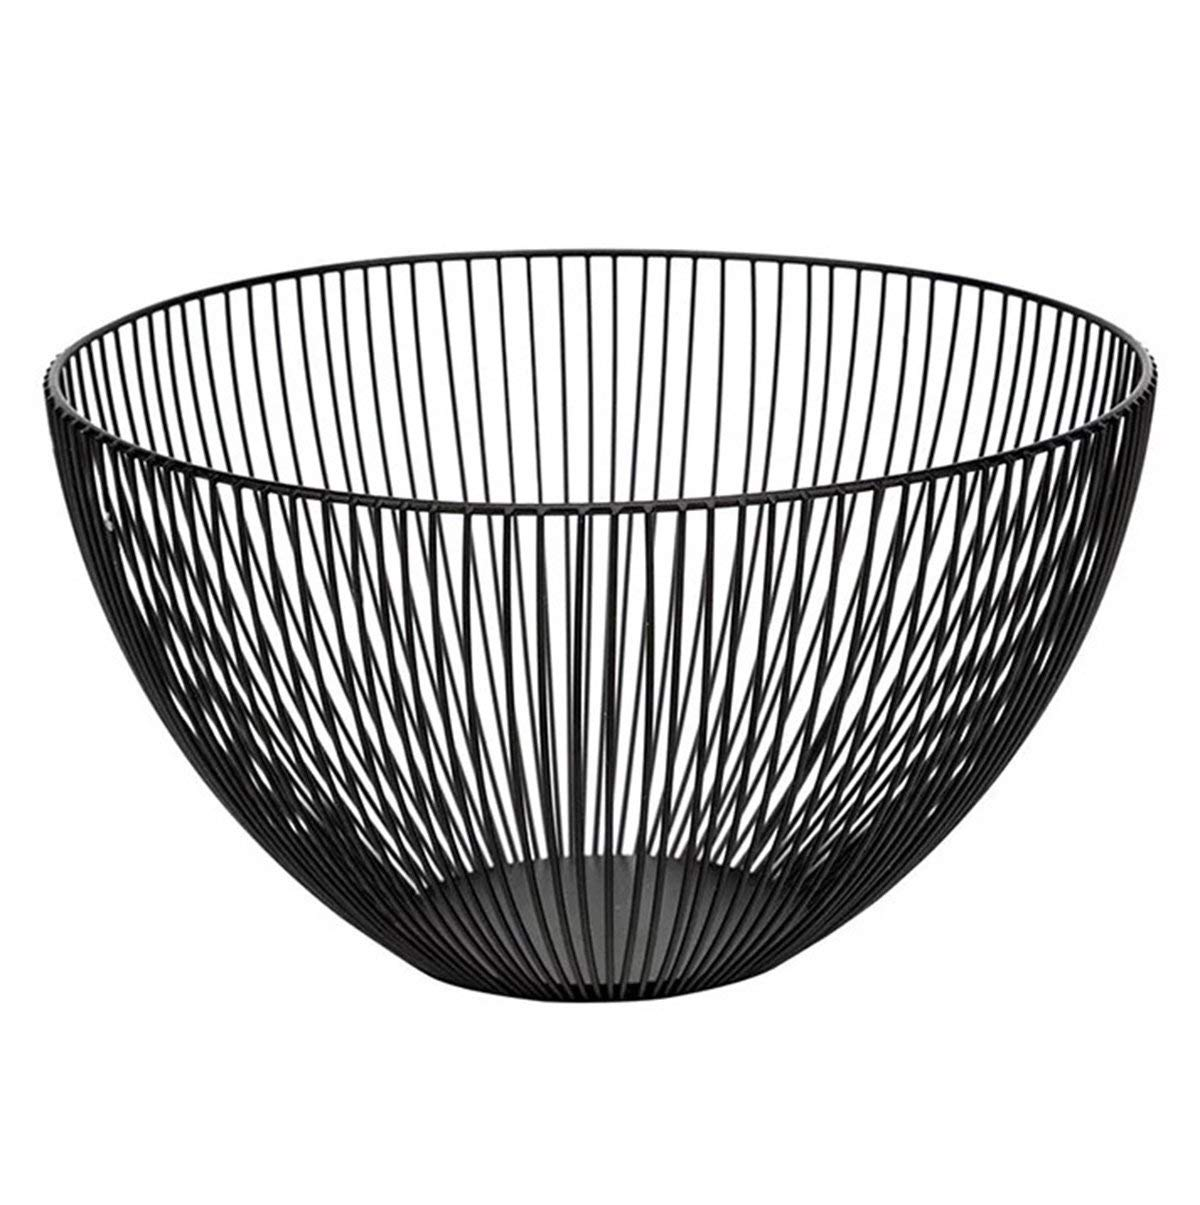 MSF dish rack Metal Wire Fruit Bowl Basket, Round Black Fruit Vegetable, Egg, Bread Storage Bowl Holder Stand for Kitchen Counter, Cabinet and Pantry, Dia 25 cm